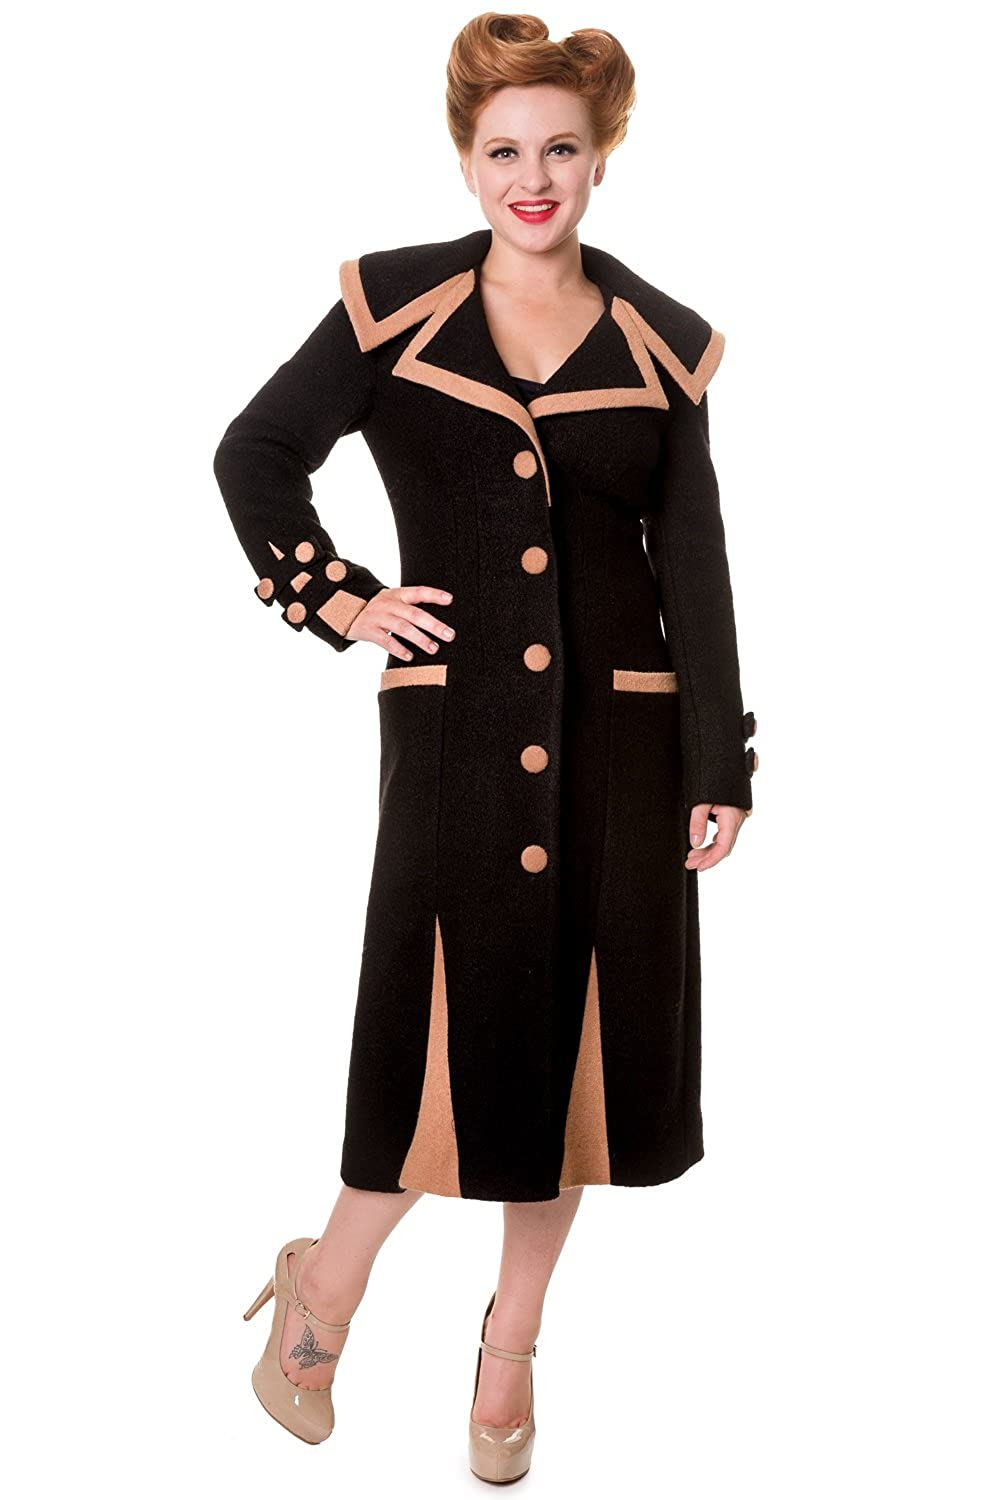 Vintage Coats & Jackets | Retro Coats and Jackets Banned Long Vintage Button Coat - Black or Camel $119.95 AT vintagedancer.com